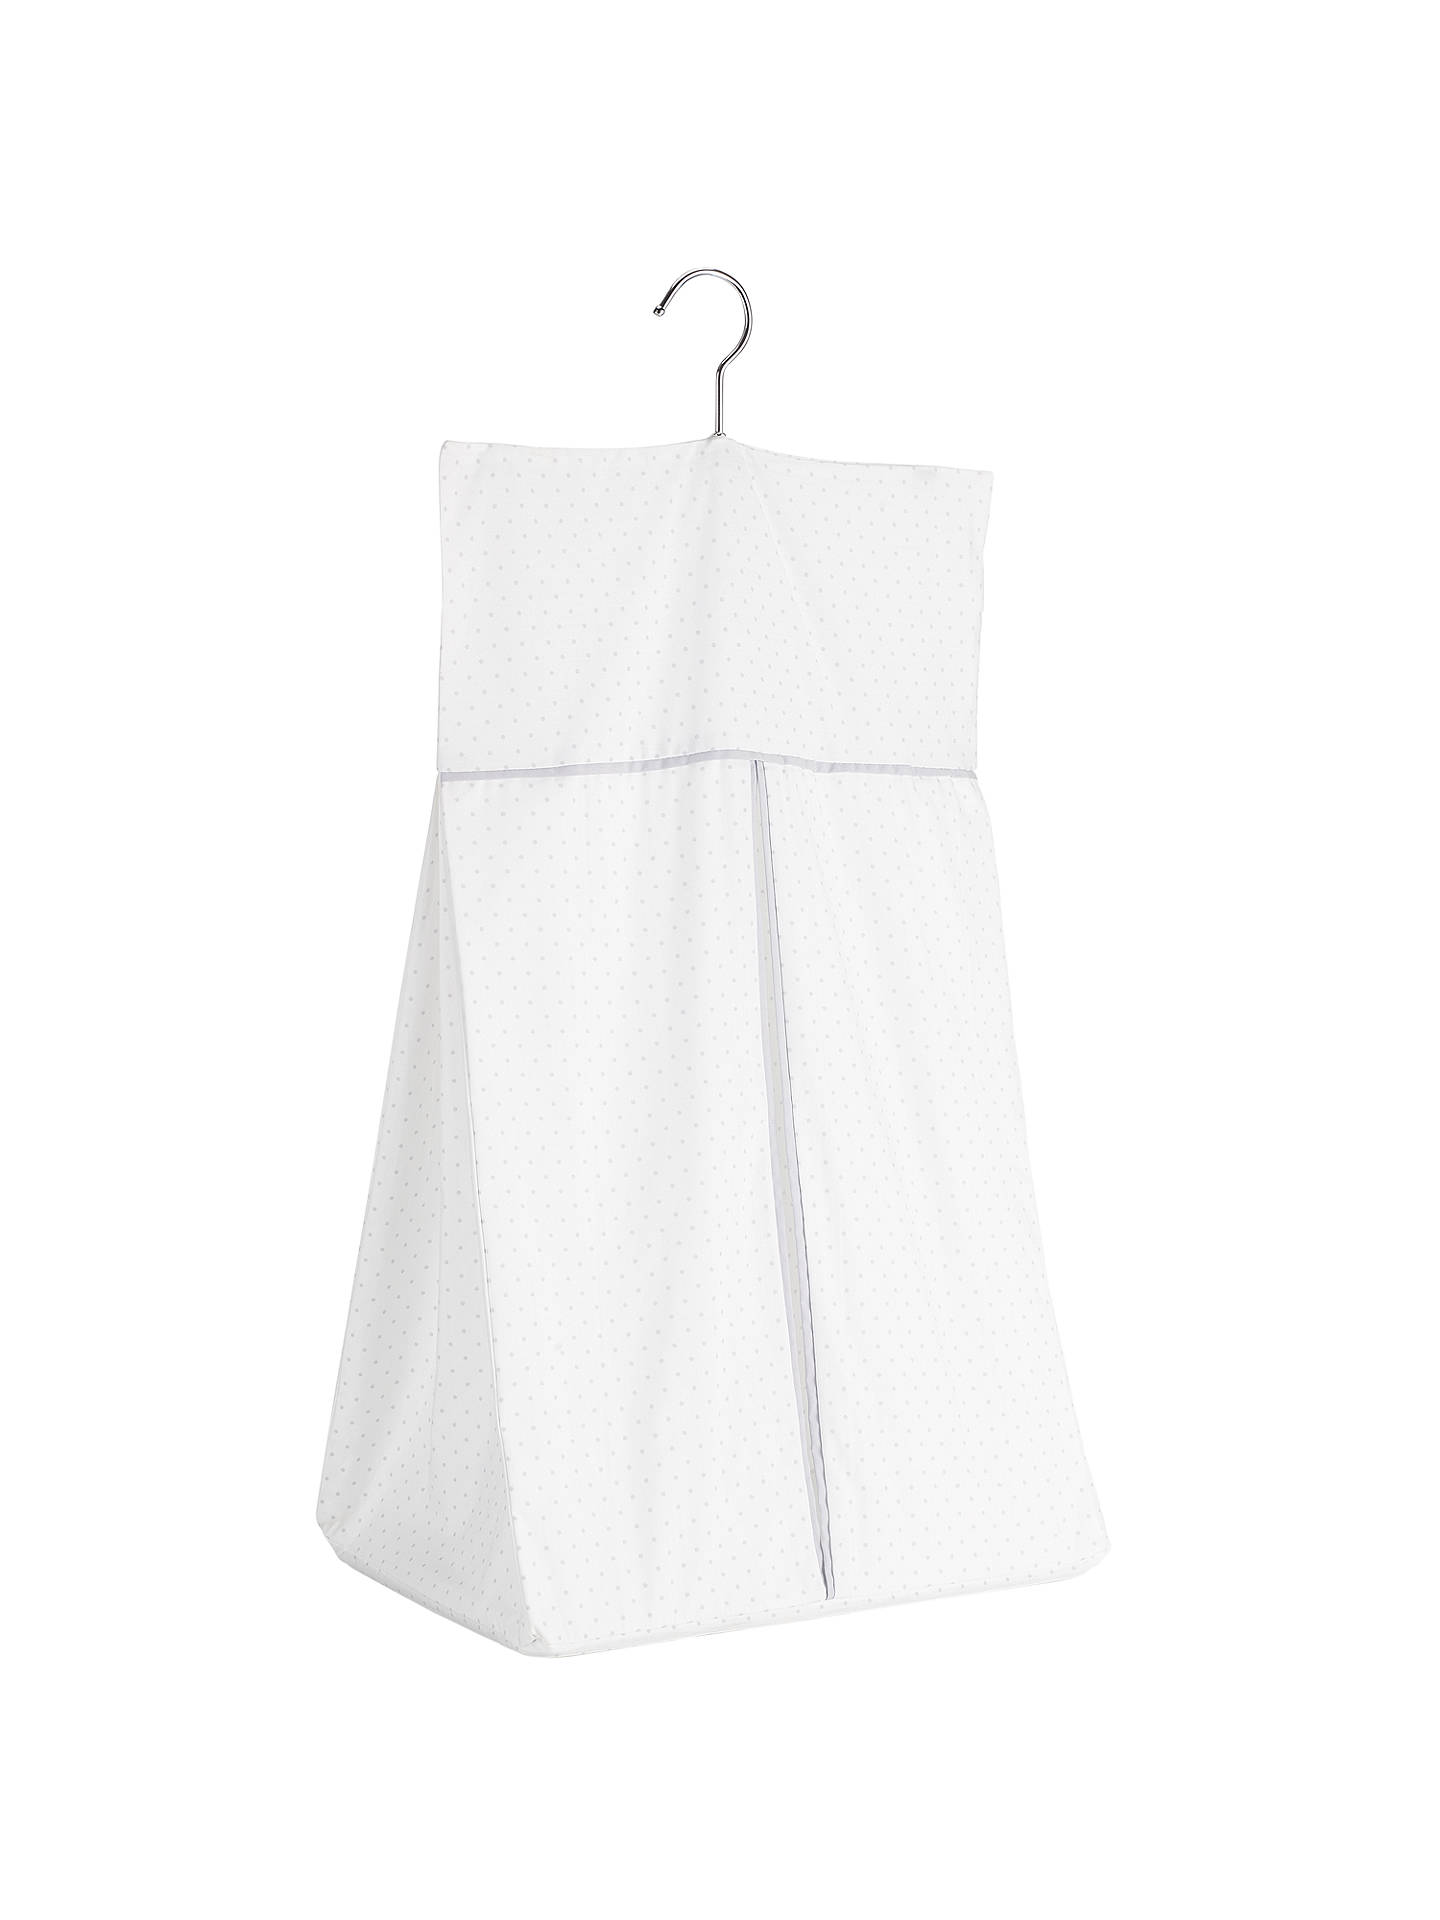 BuyJohn Lewis Spot Print Nappy Stacker, White/Grey Online at johnlewis.com